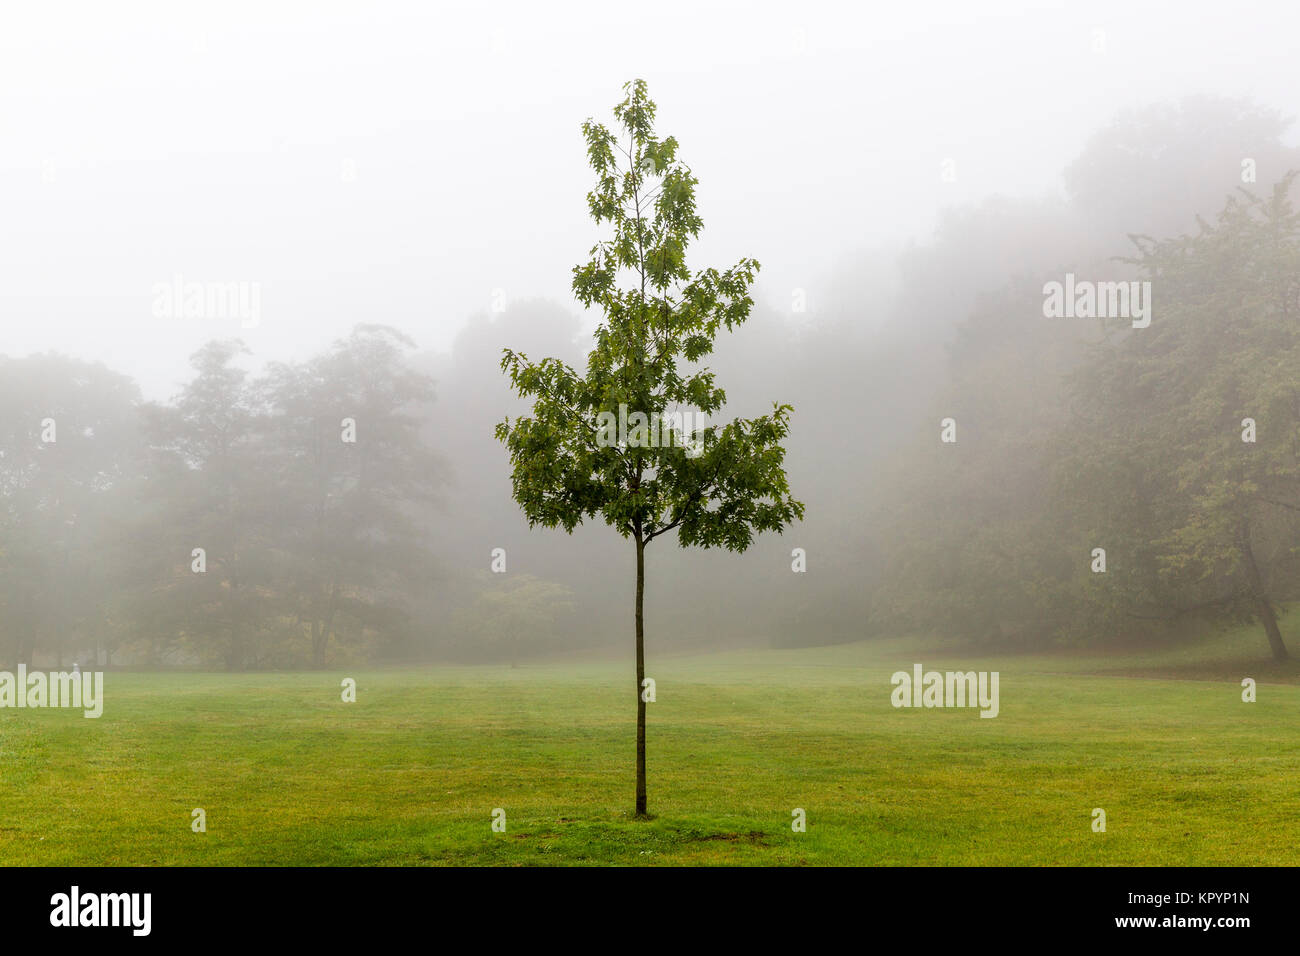 Lonely tree in the forest in the fog - Stock Image